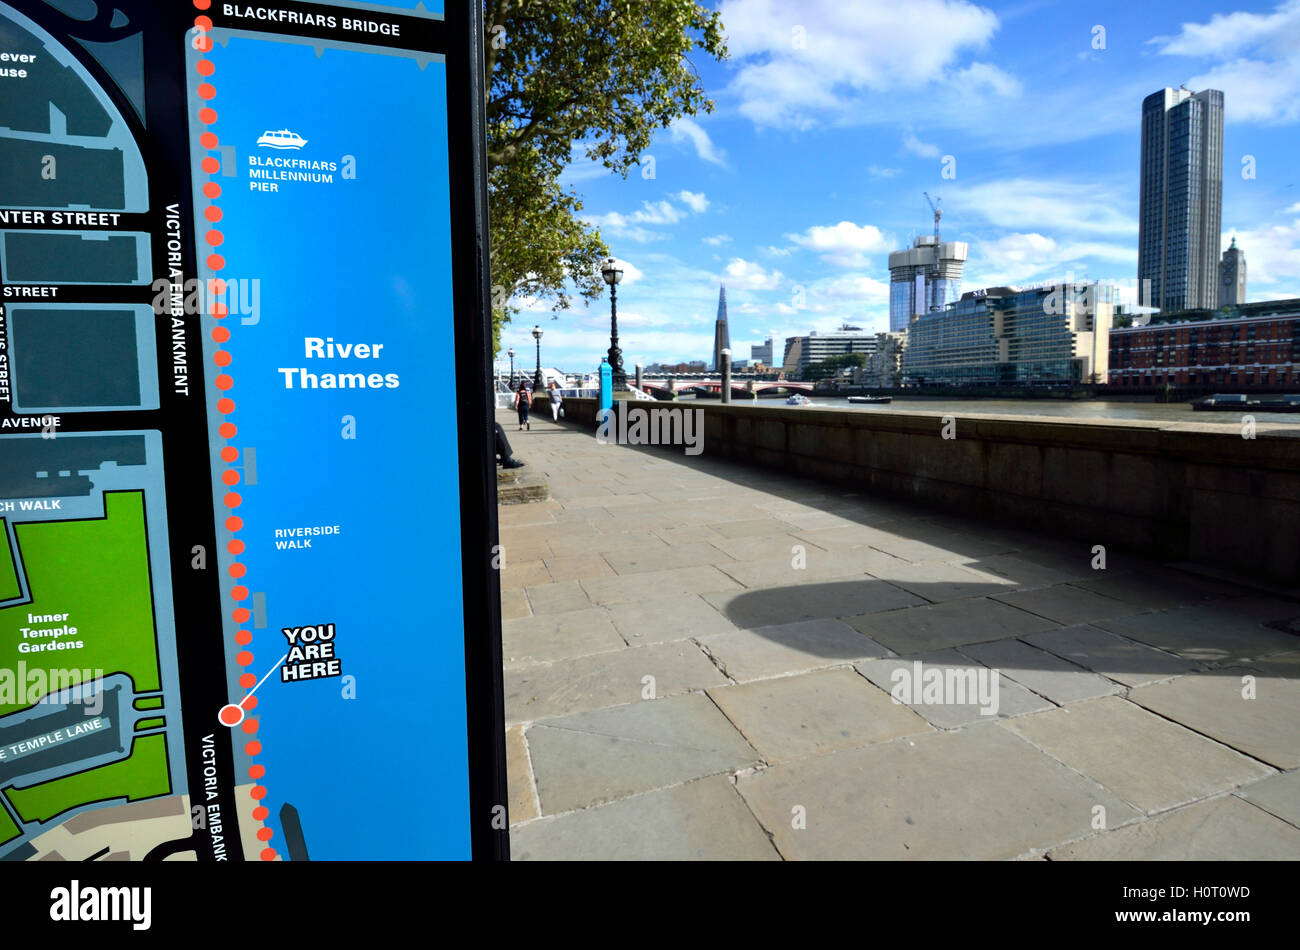 London, England, UK. 'You are here' tourist information map on the Victoria Embankment by the River Thames. - Stock Image